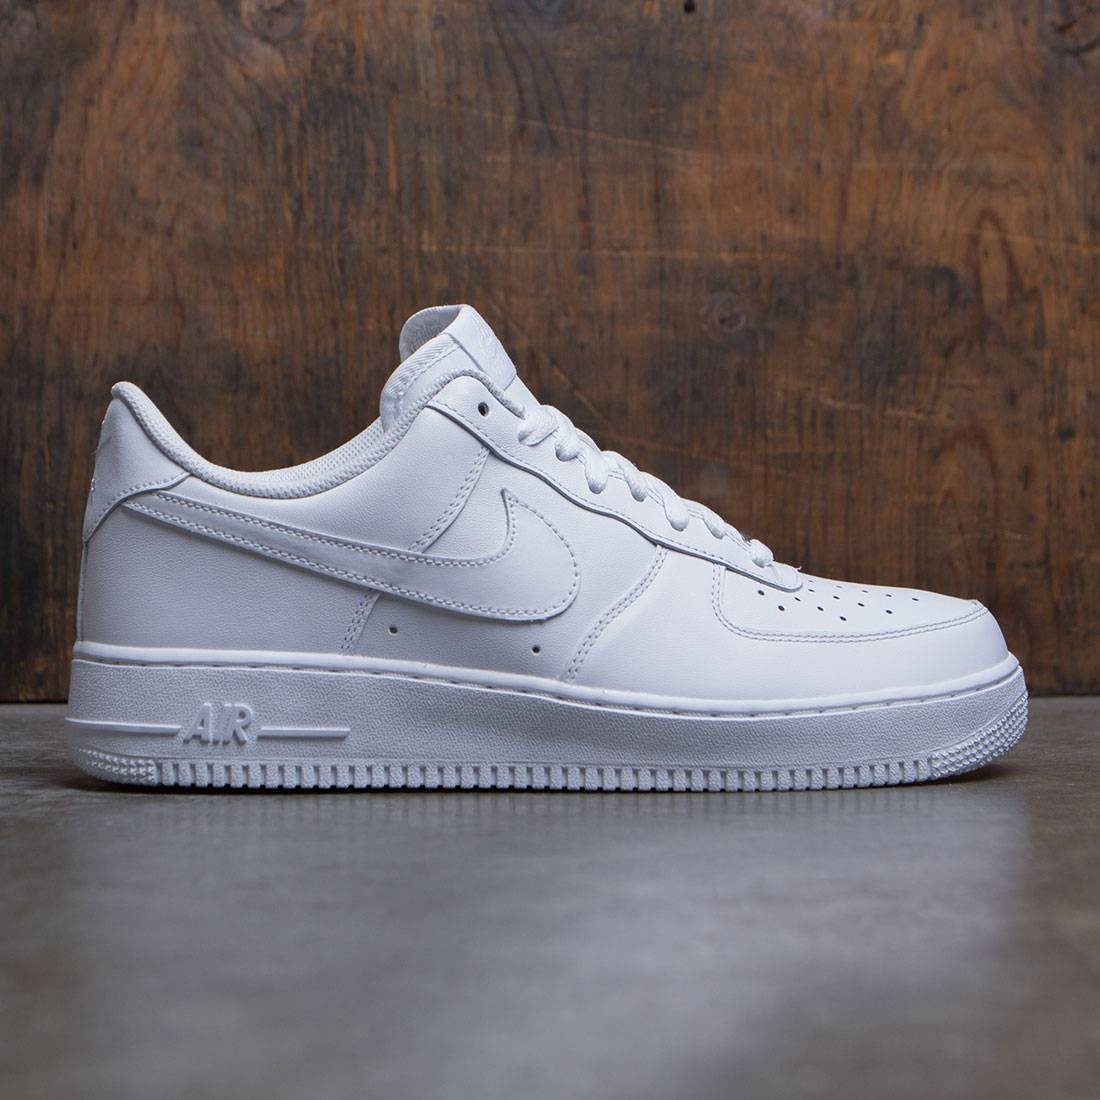 prix compétitif 40dad 46caa Nike Air Force 1 07 Low (white / white)